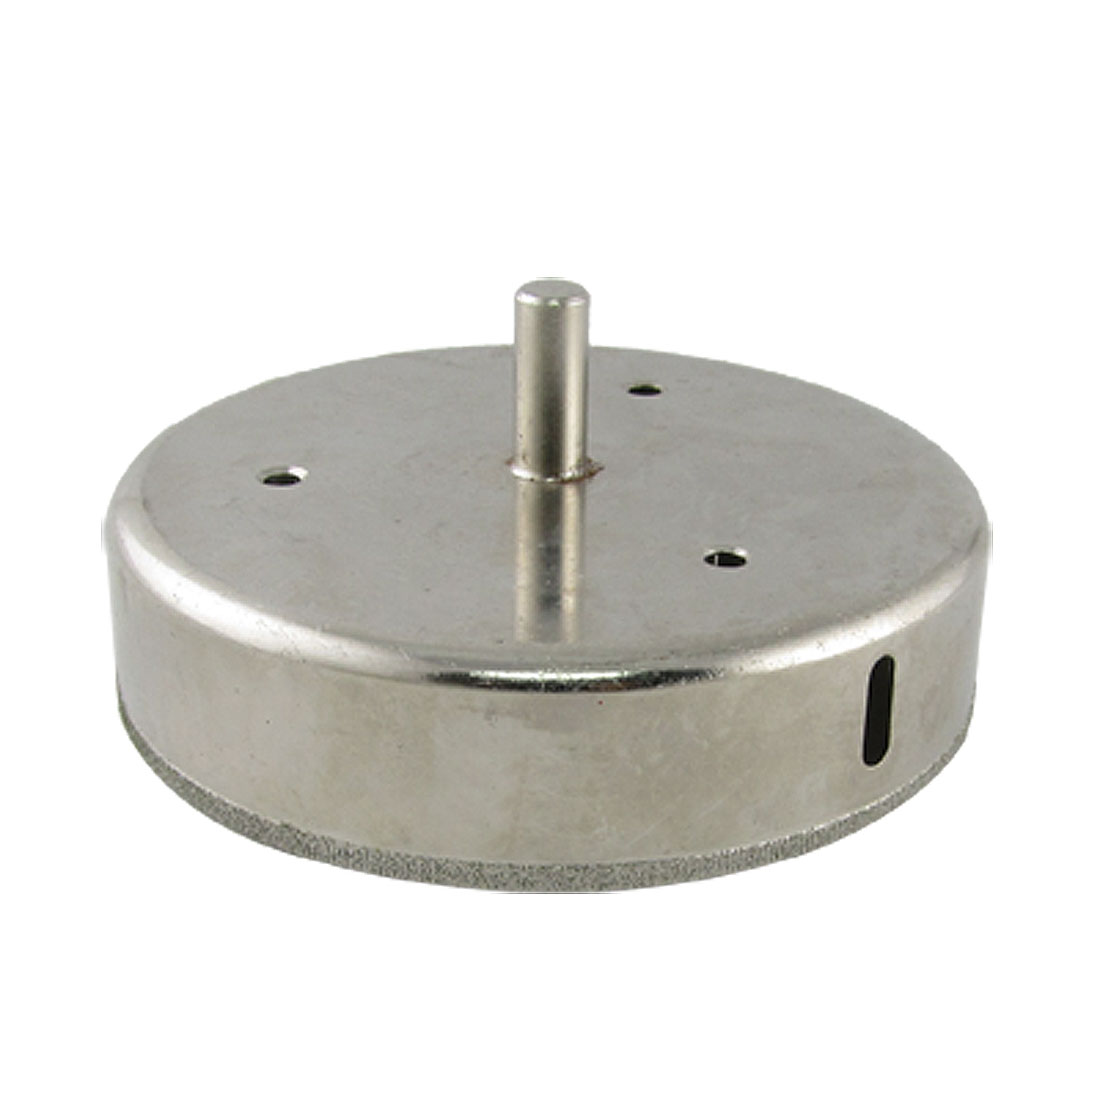 Diamond Tipped Glass Drilling Hole Saw Cutter 120mm Diameter